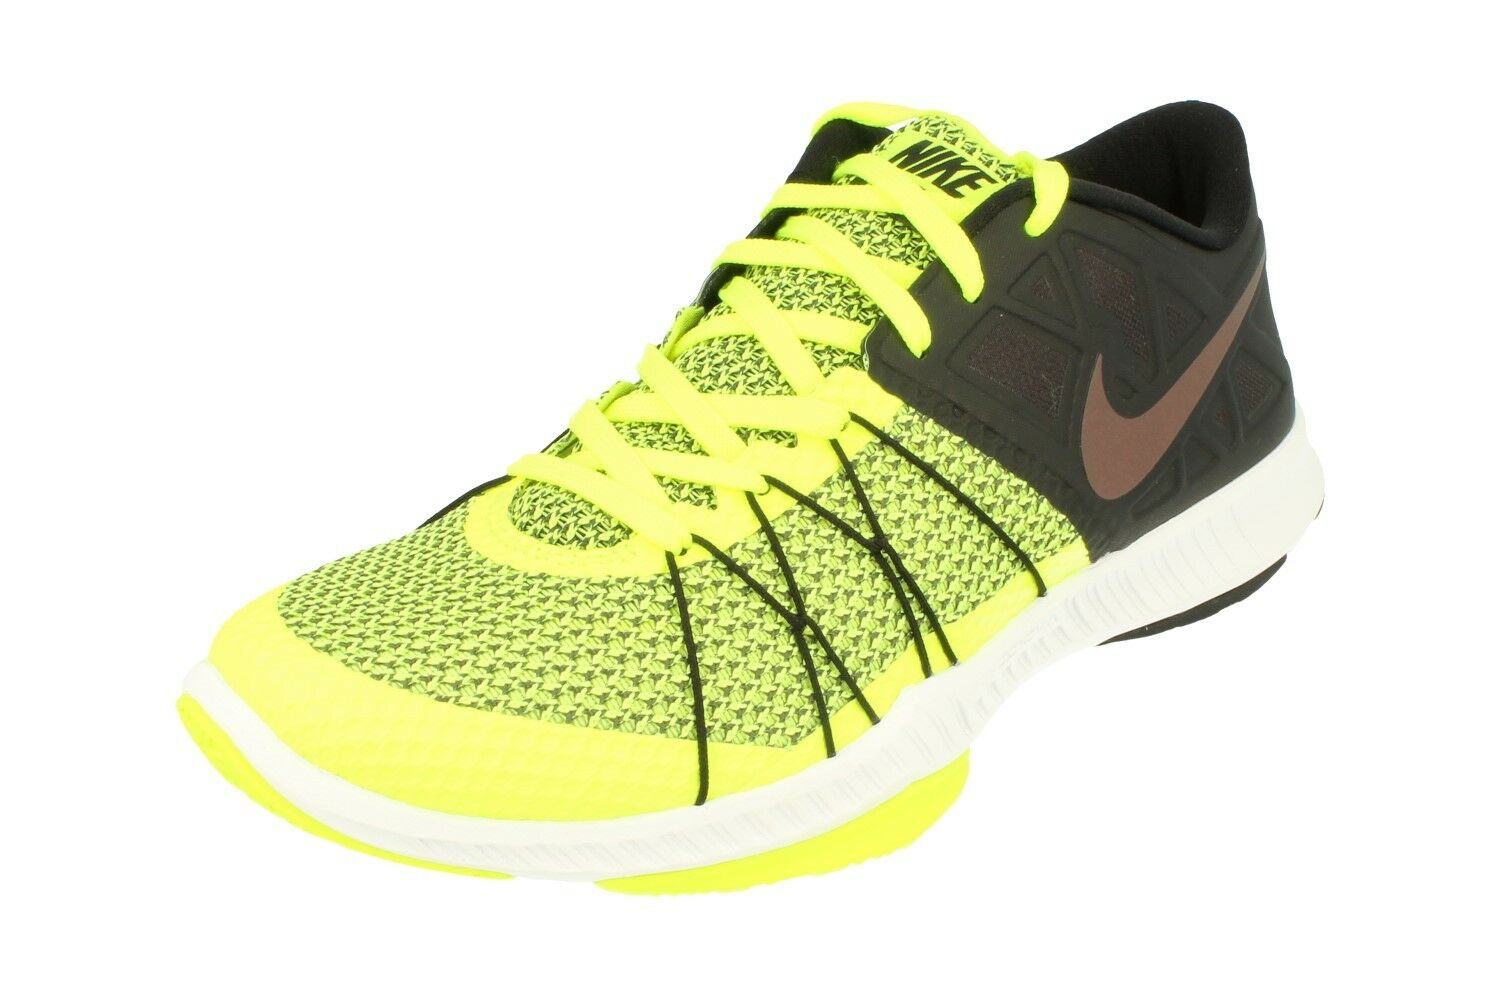 Nike Zoom Train Incredibly Fast Mens Running Trainers 844803 Sneakers Shoes 008